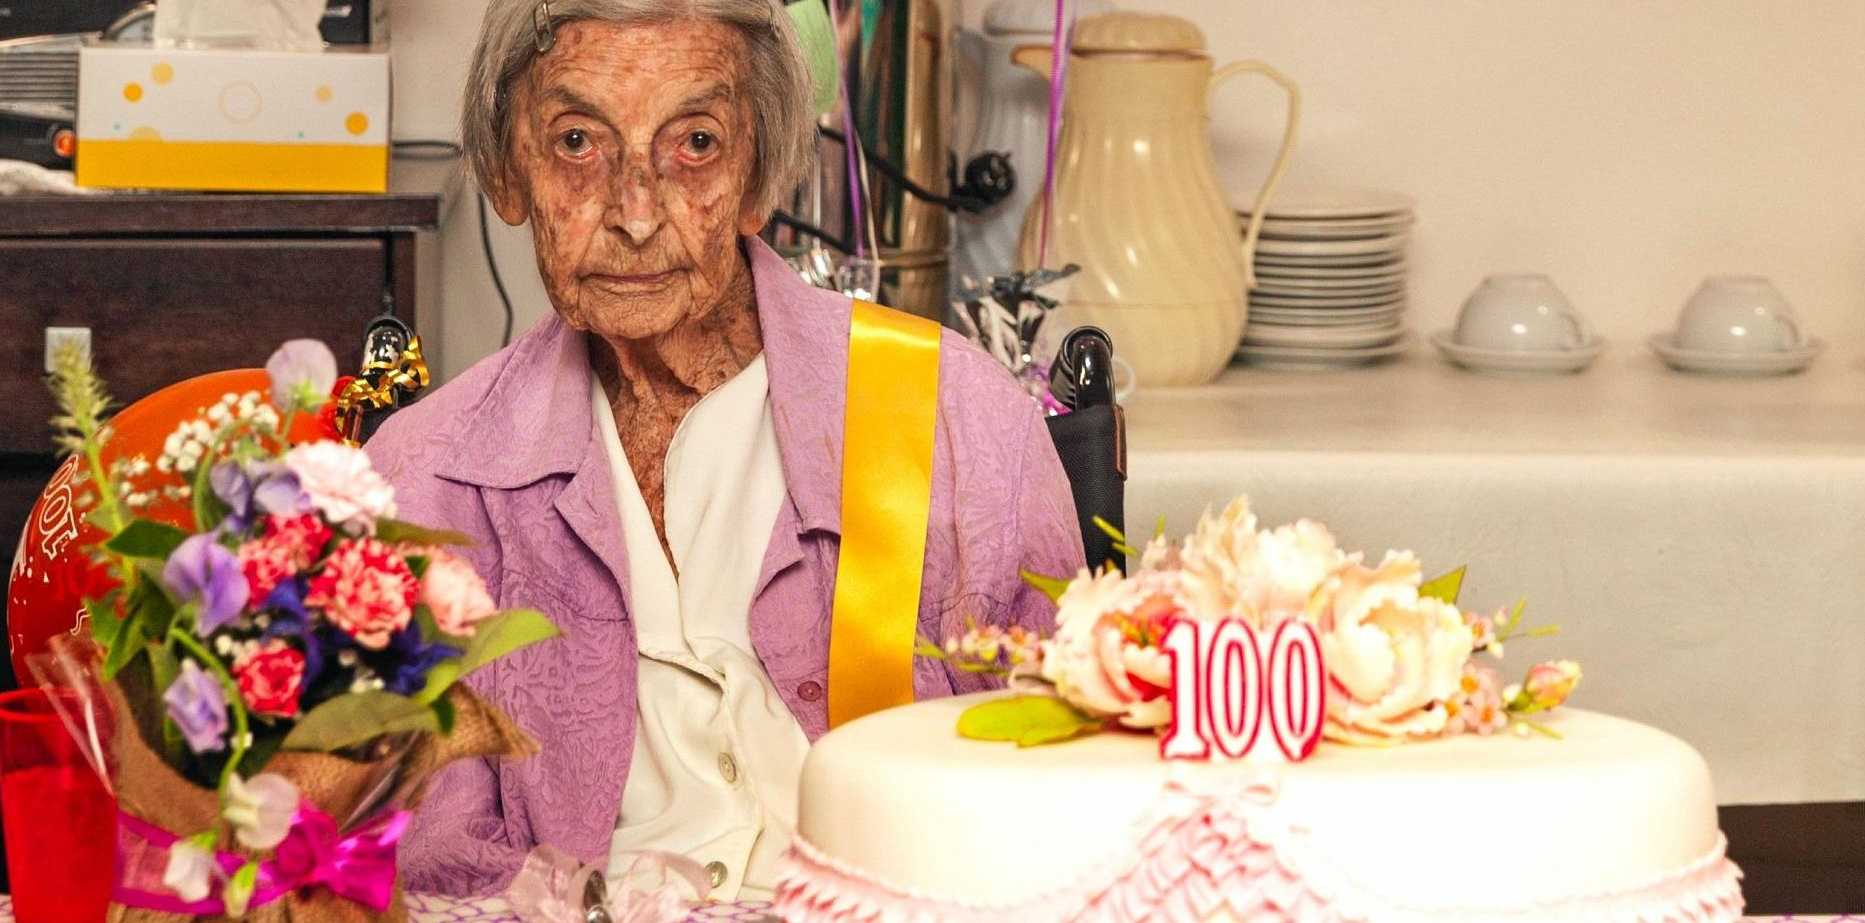 Mavis Beard celebrates her 100th birthday surrounded by friends and family that have travelled from all over to be with her.